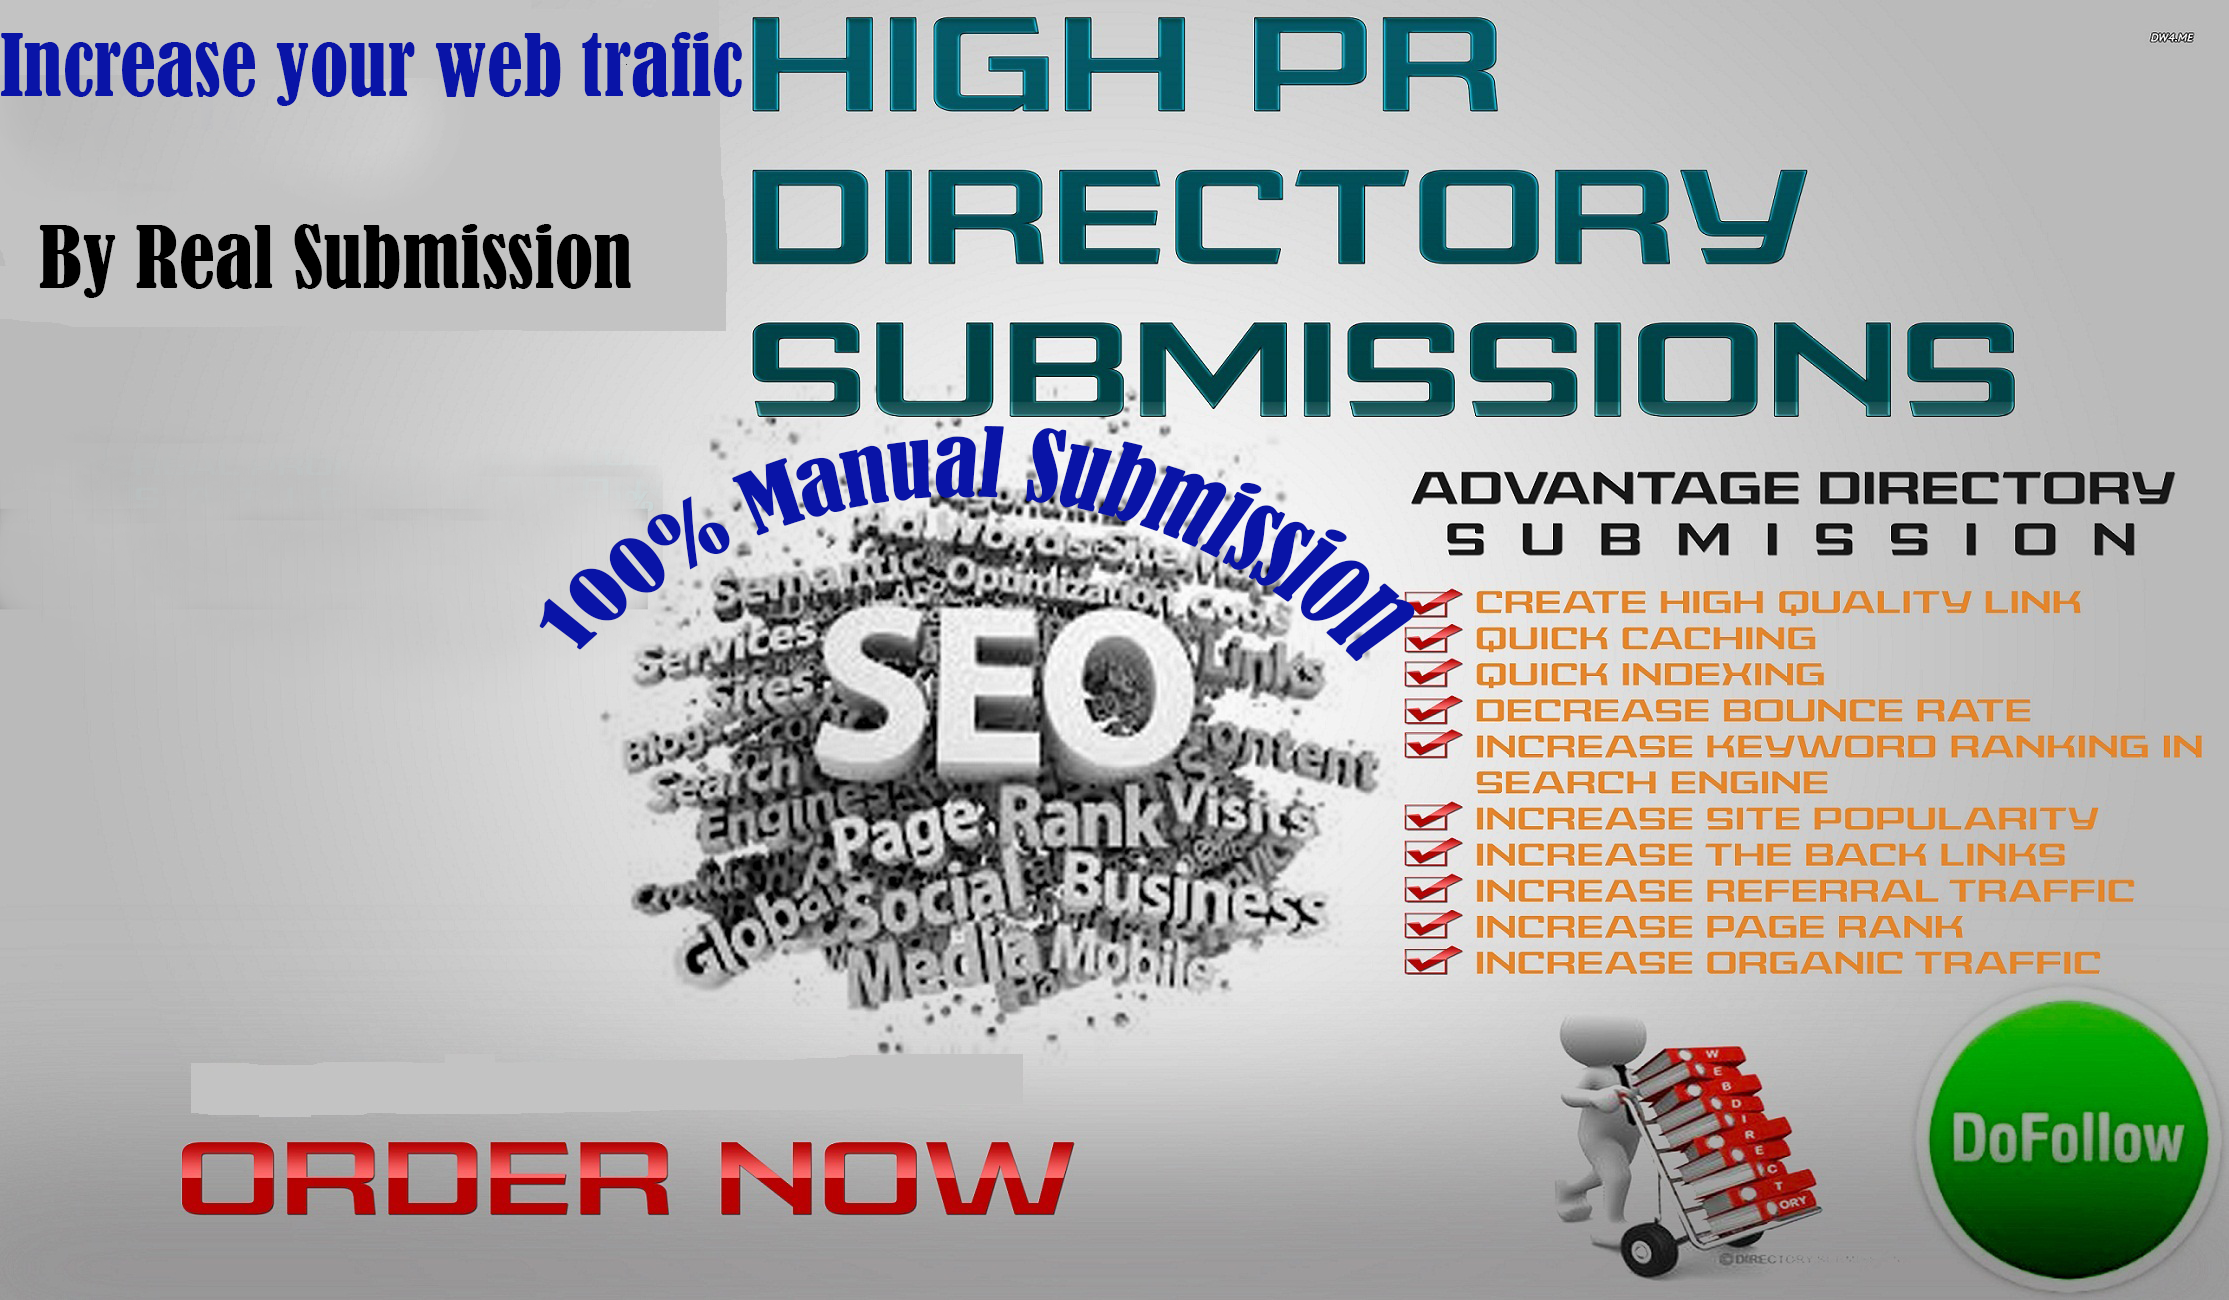 Do 80 Directory Submission, Manually Increase Your Web Trafics